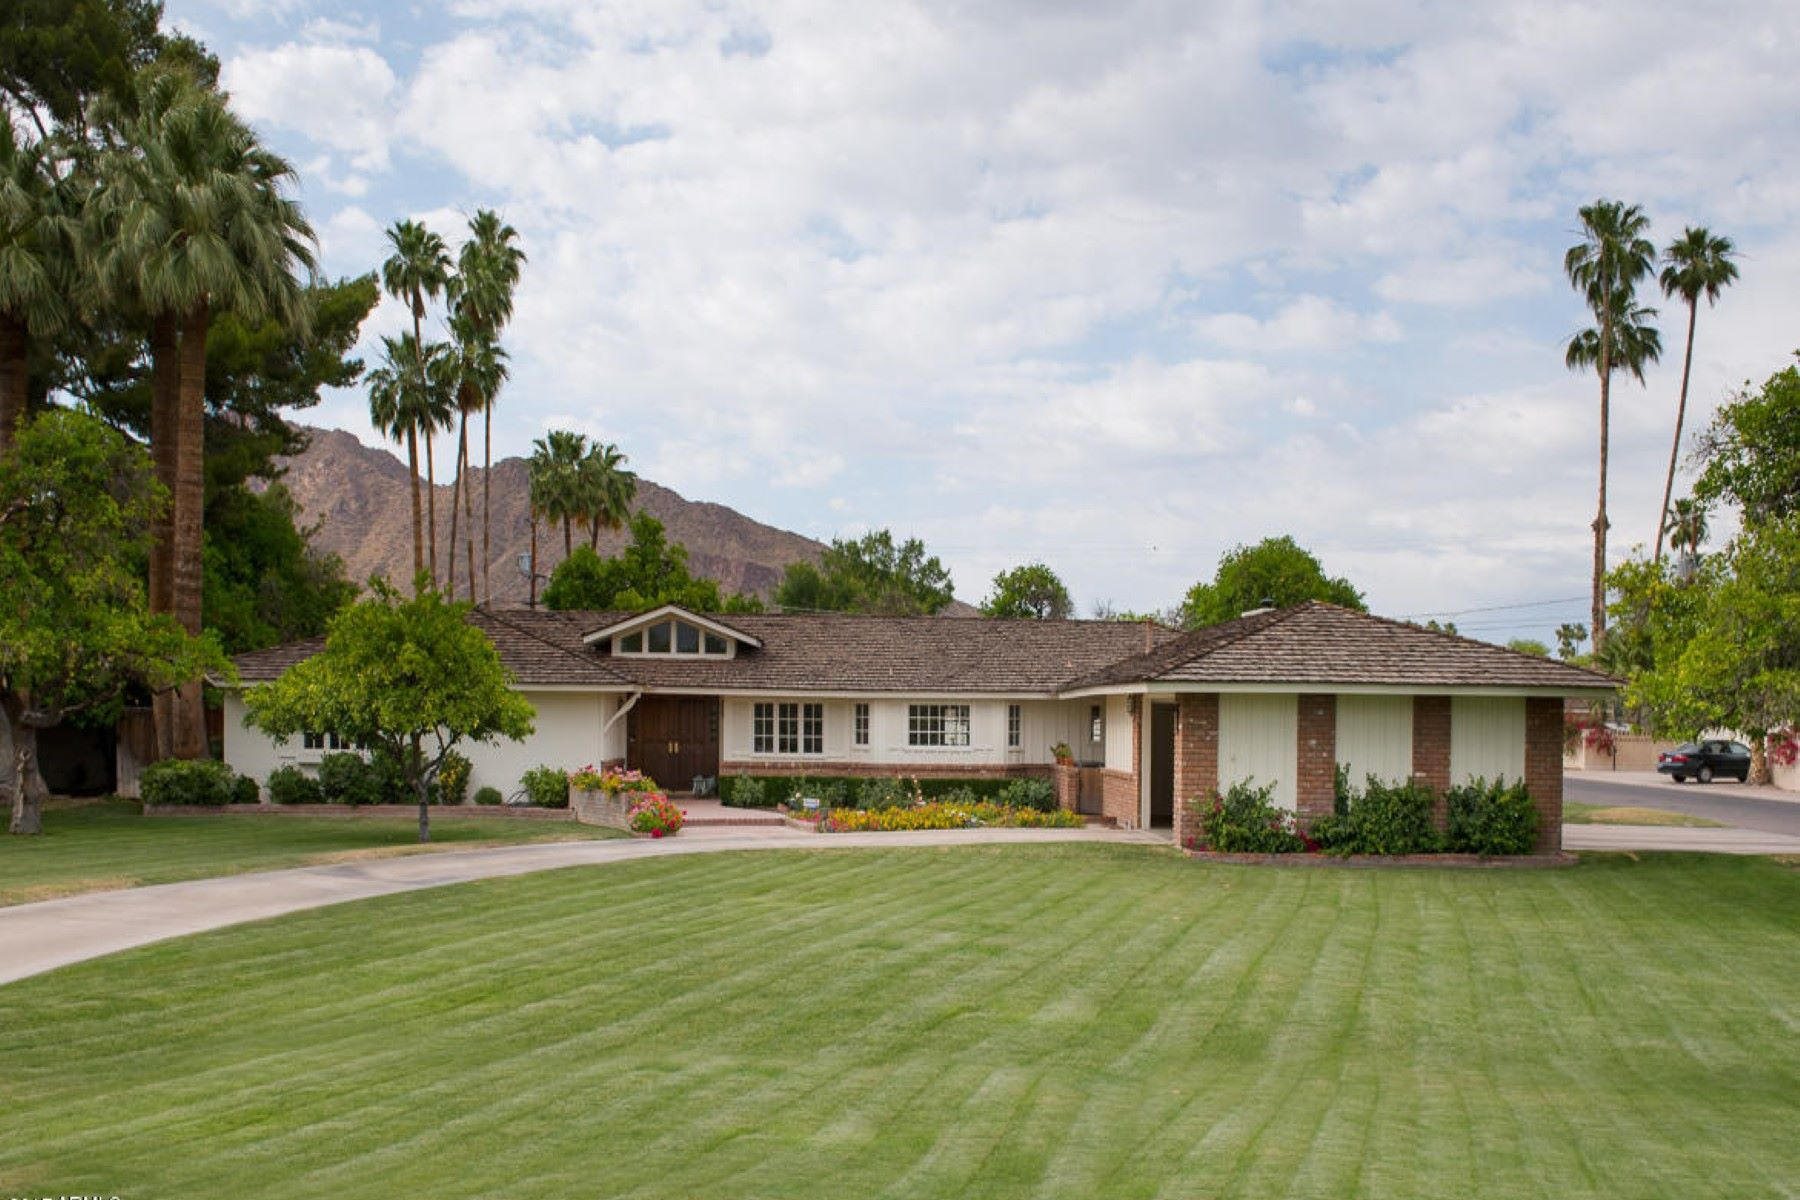 獨棟家庭住宅 為 出售 在 Charming Ranch Home in the Heart of Arcadia 6040 E Lafayette Blvd Scottsdale, 亞利桑那州, 85251 美國